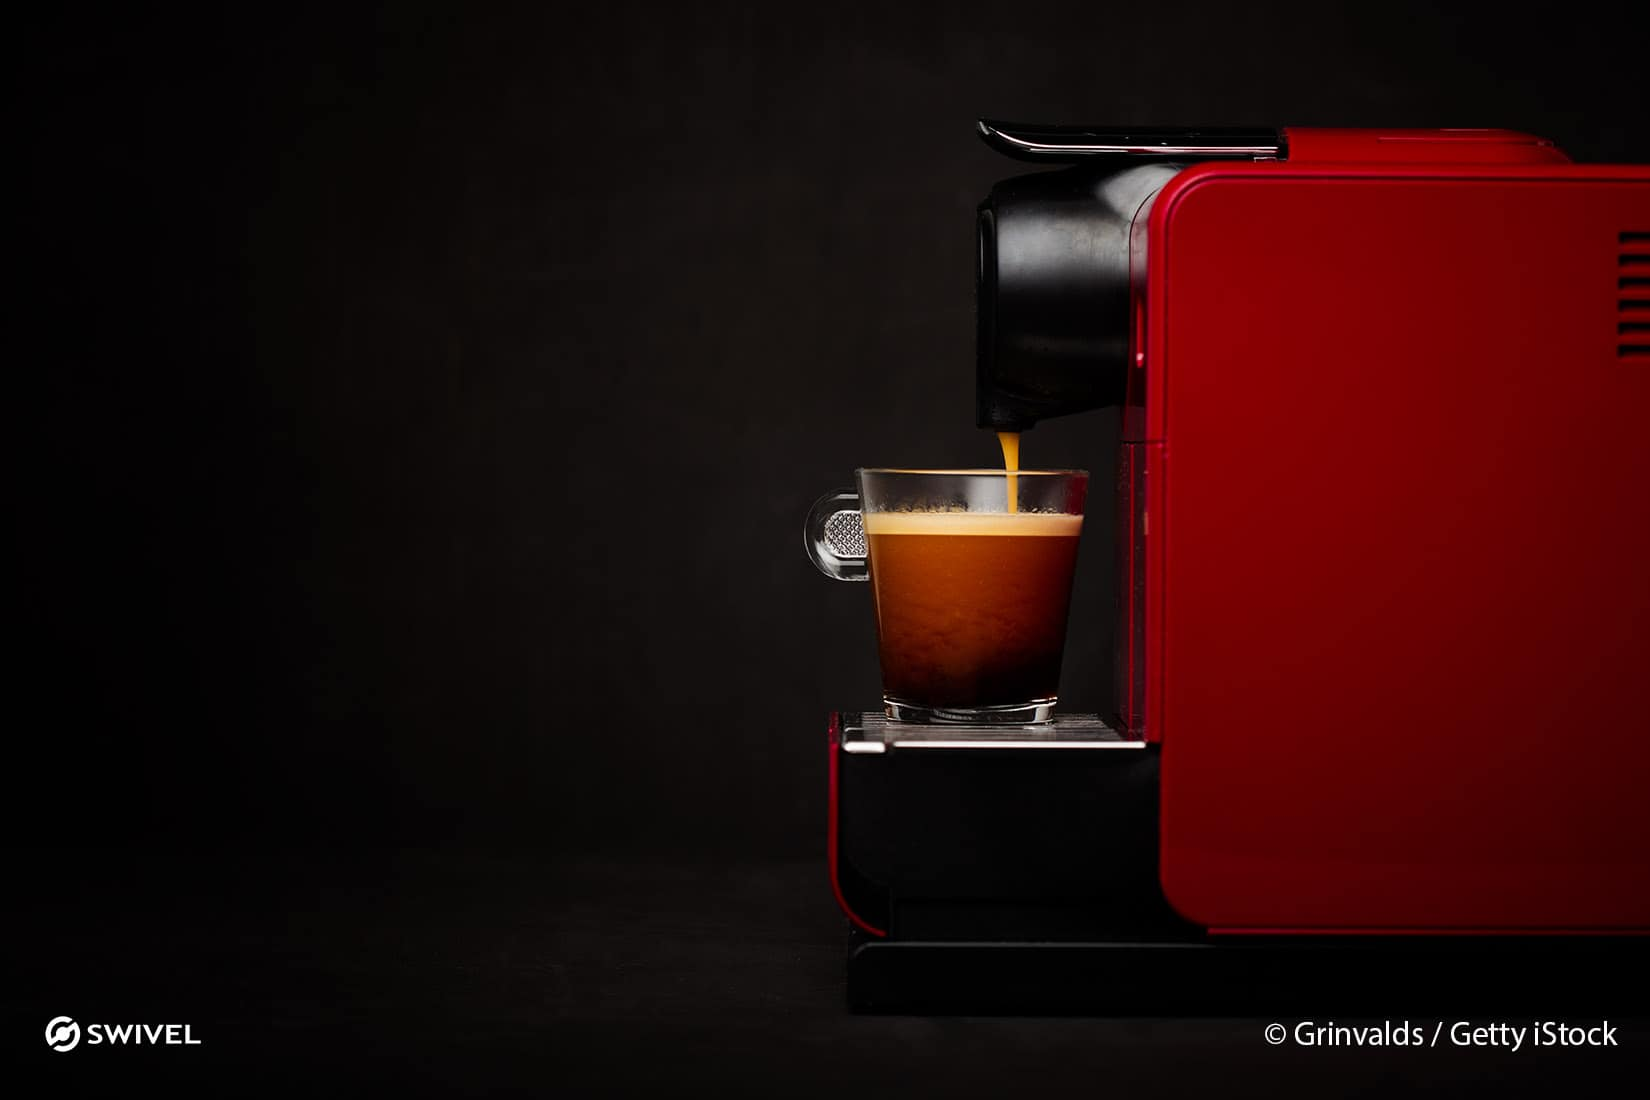 Coffeemaker Contest on SwivelBlog